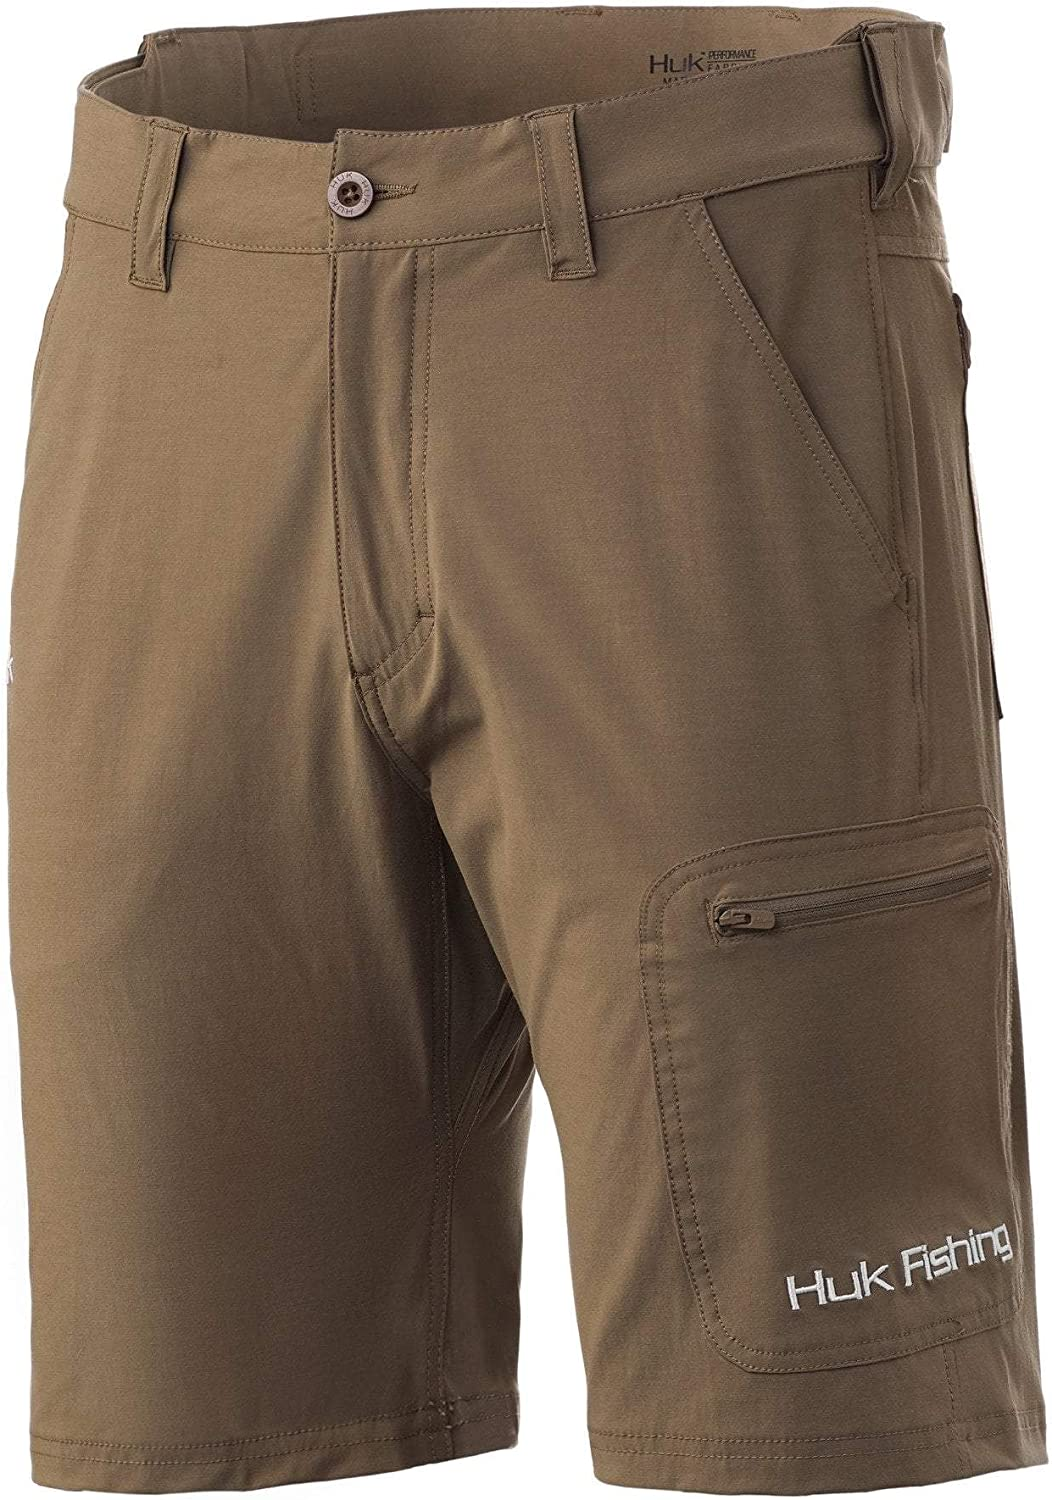 HUK Cheap bargain Men's Next Be super welcome Level Shorts Fishing Performance Quick-Drying